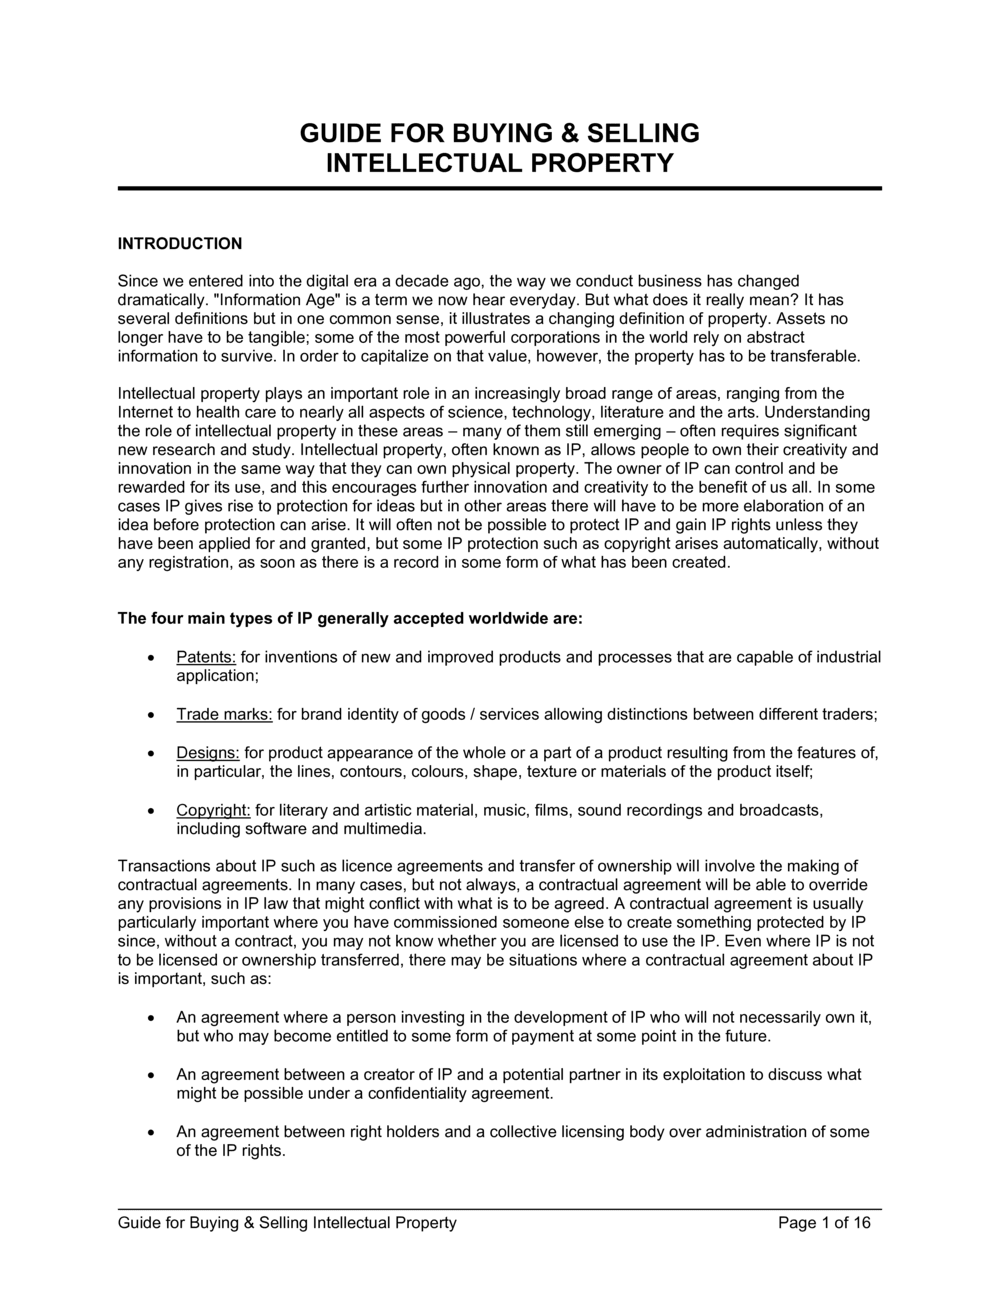 Business-in-a-Box's Guide for Buying & Selling Intellectual Property Template